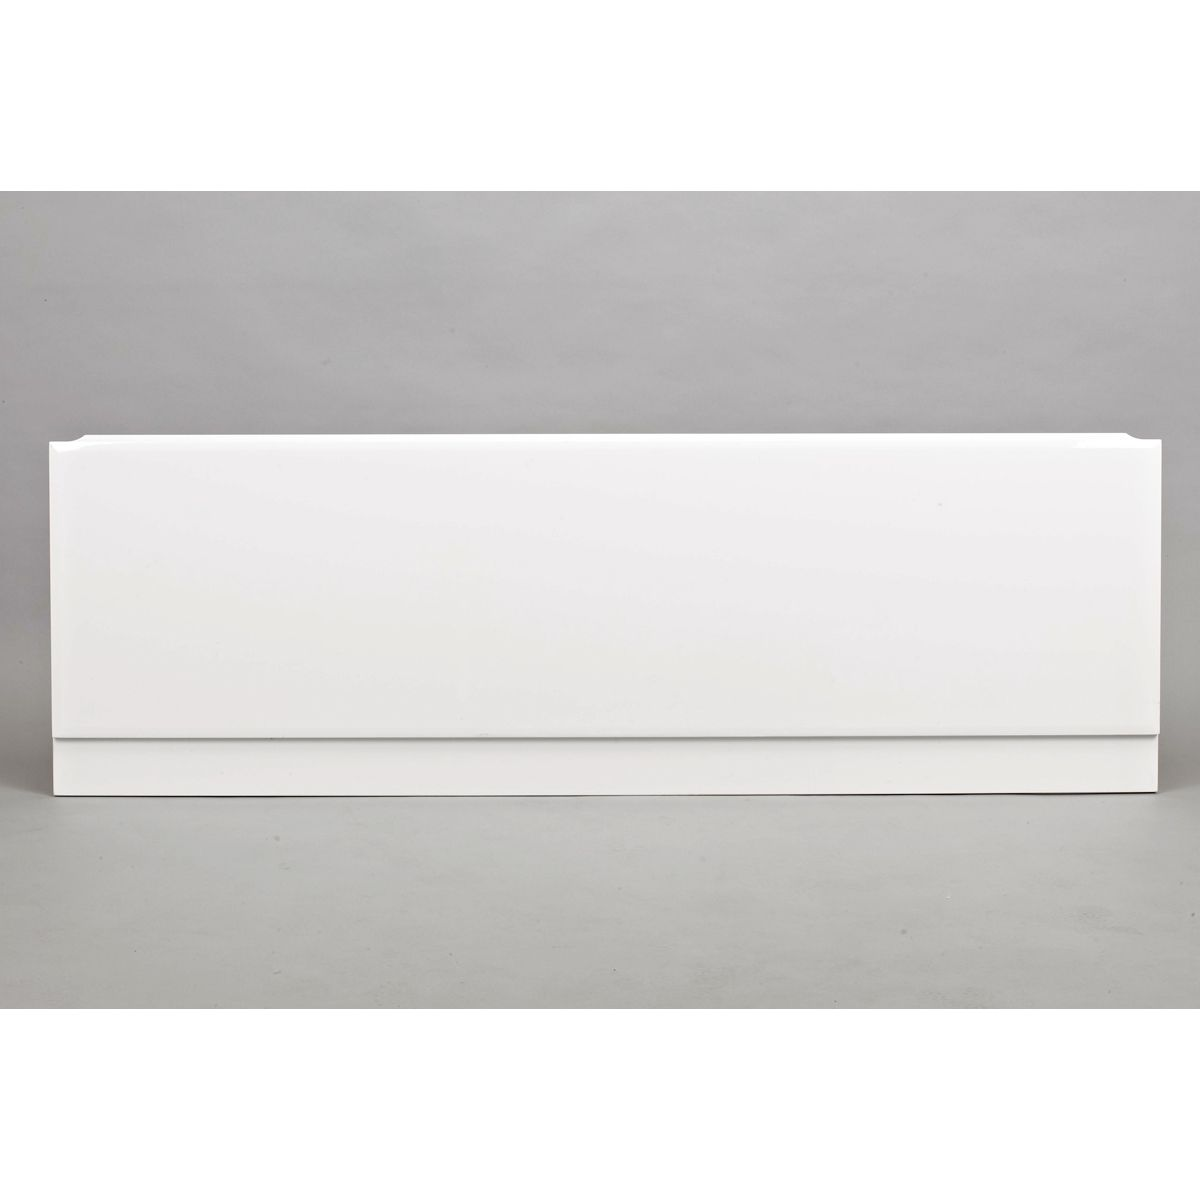 RAK Metropolitan Gloss White Front Bath Panel 1800mm